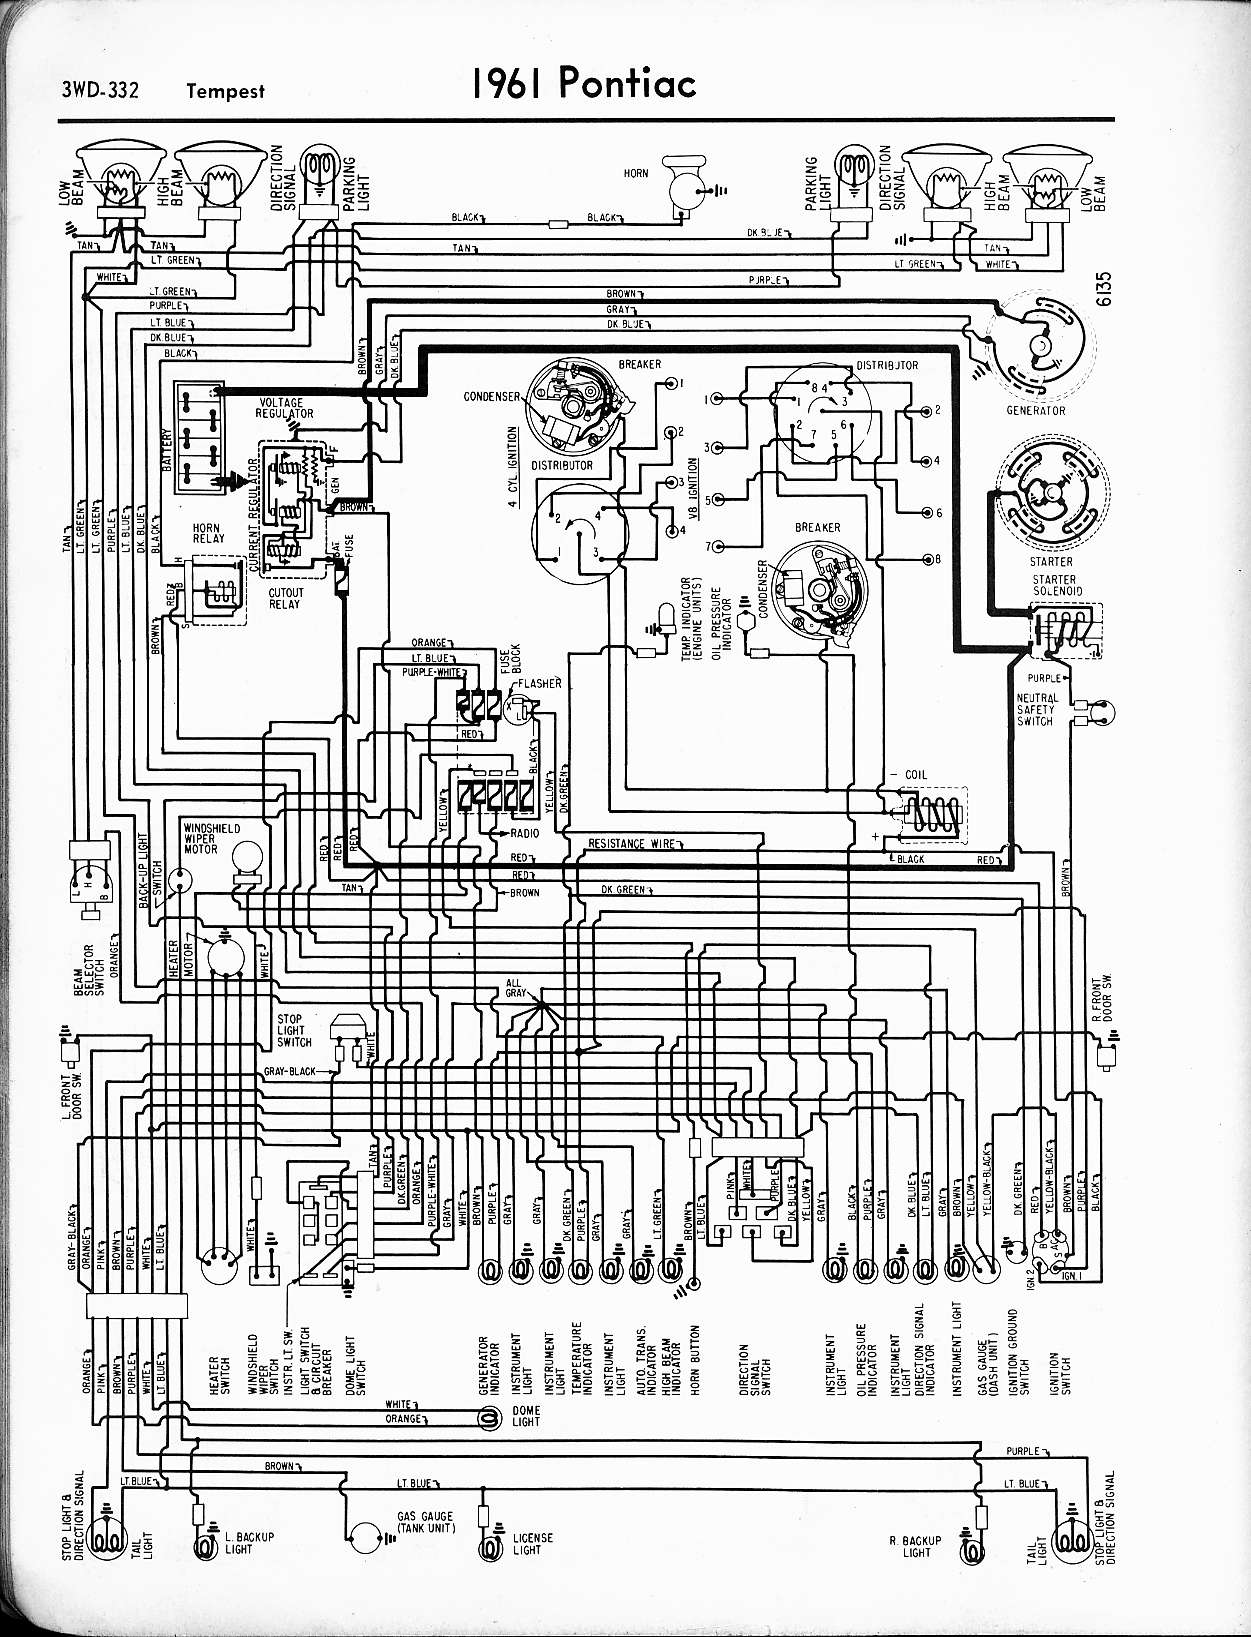 Pontiac Reverb Wiring Diagram Opinions About Diagrams 1997 Sunfire 2 4 Easy Rules Of U2022 Rh Ideoder Co Uk Starter Grand Am